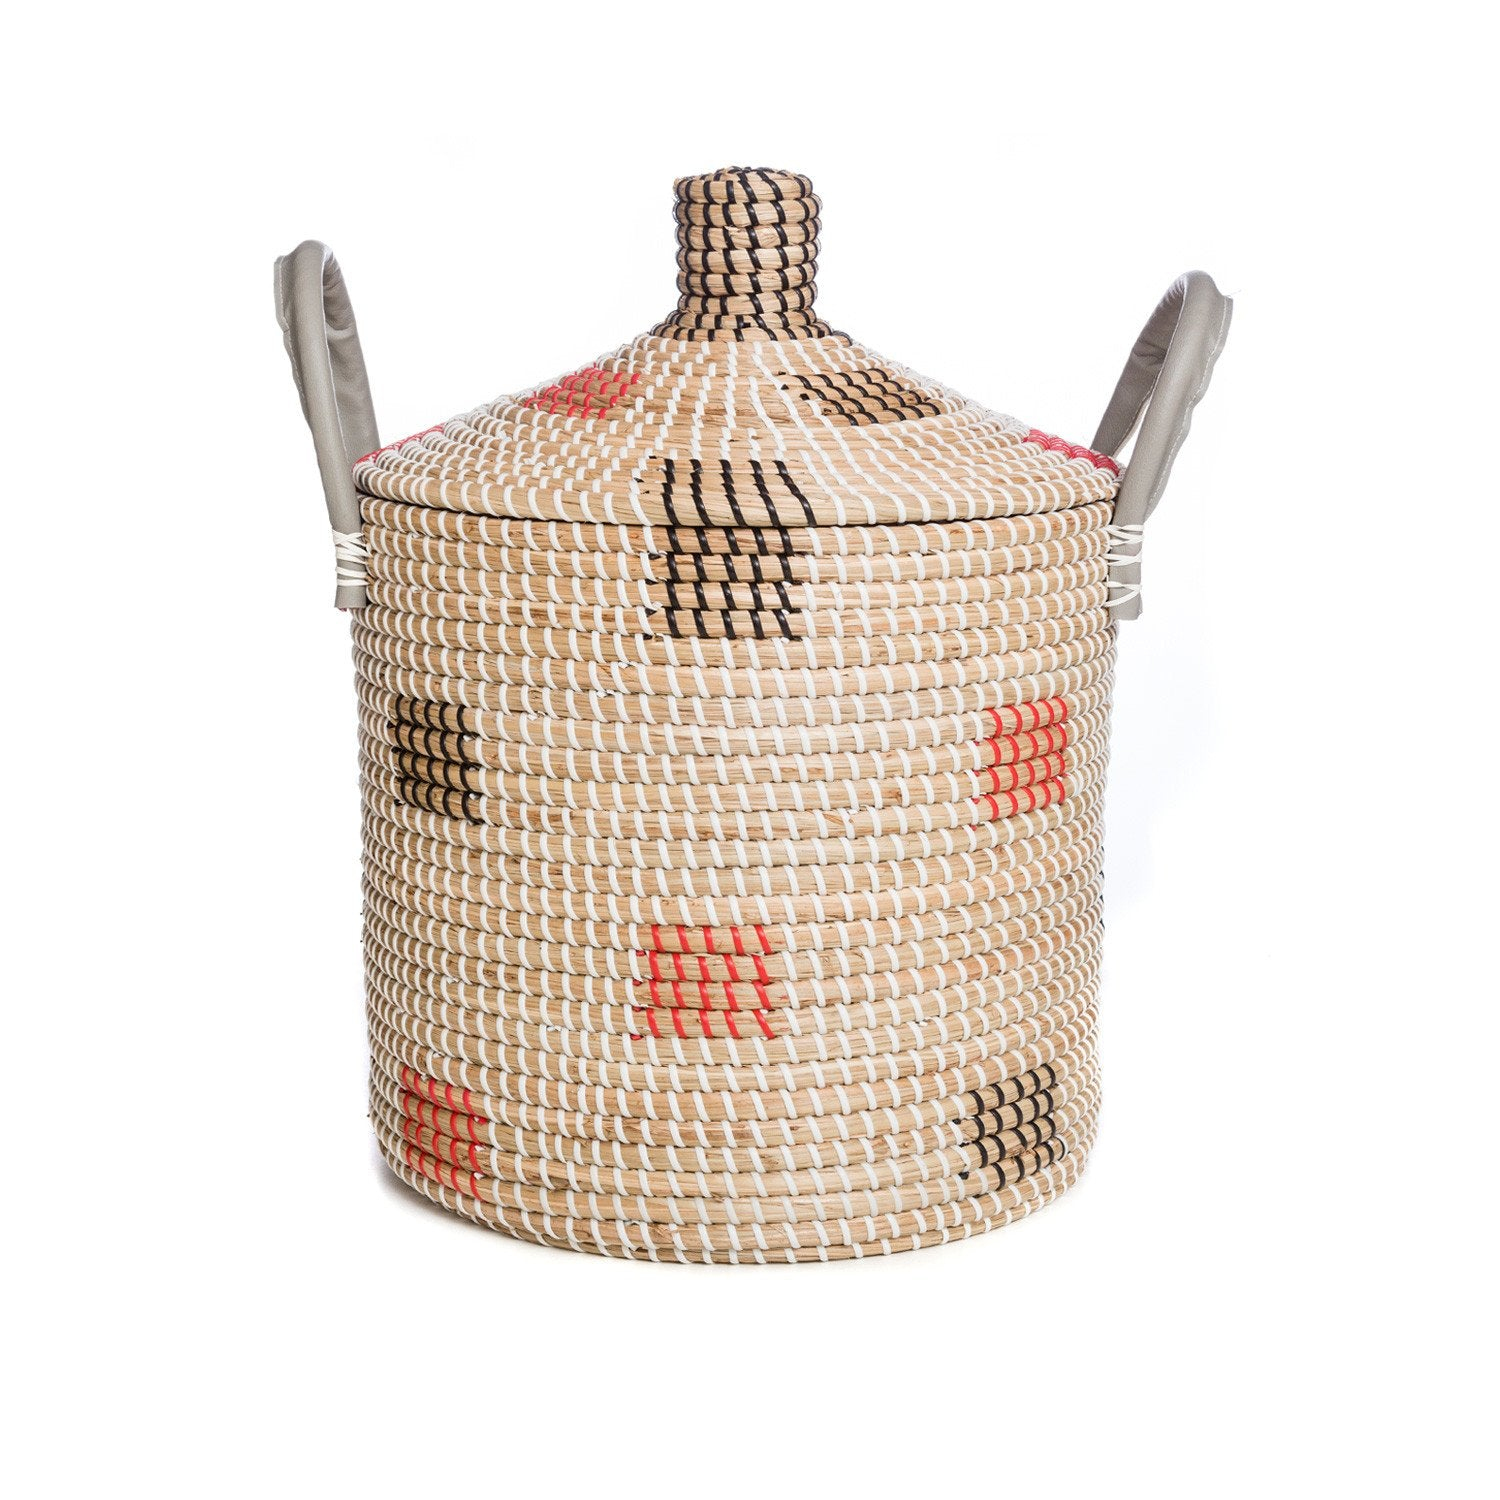 ROUND BASKET / LEATHER HANDLE